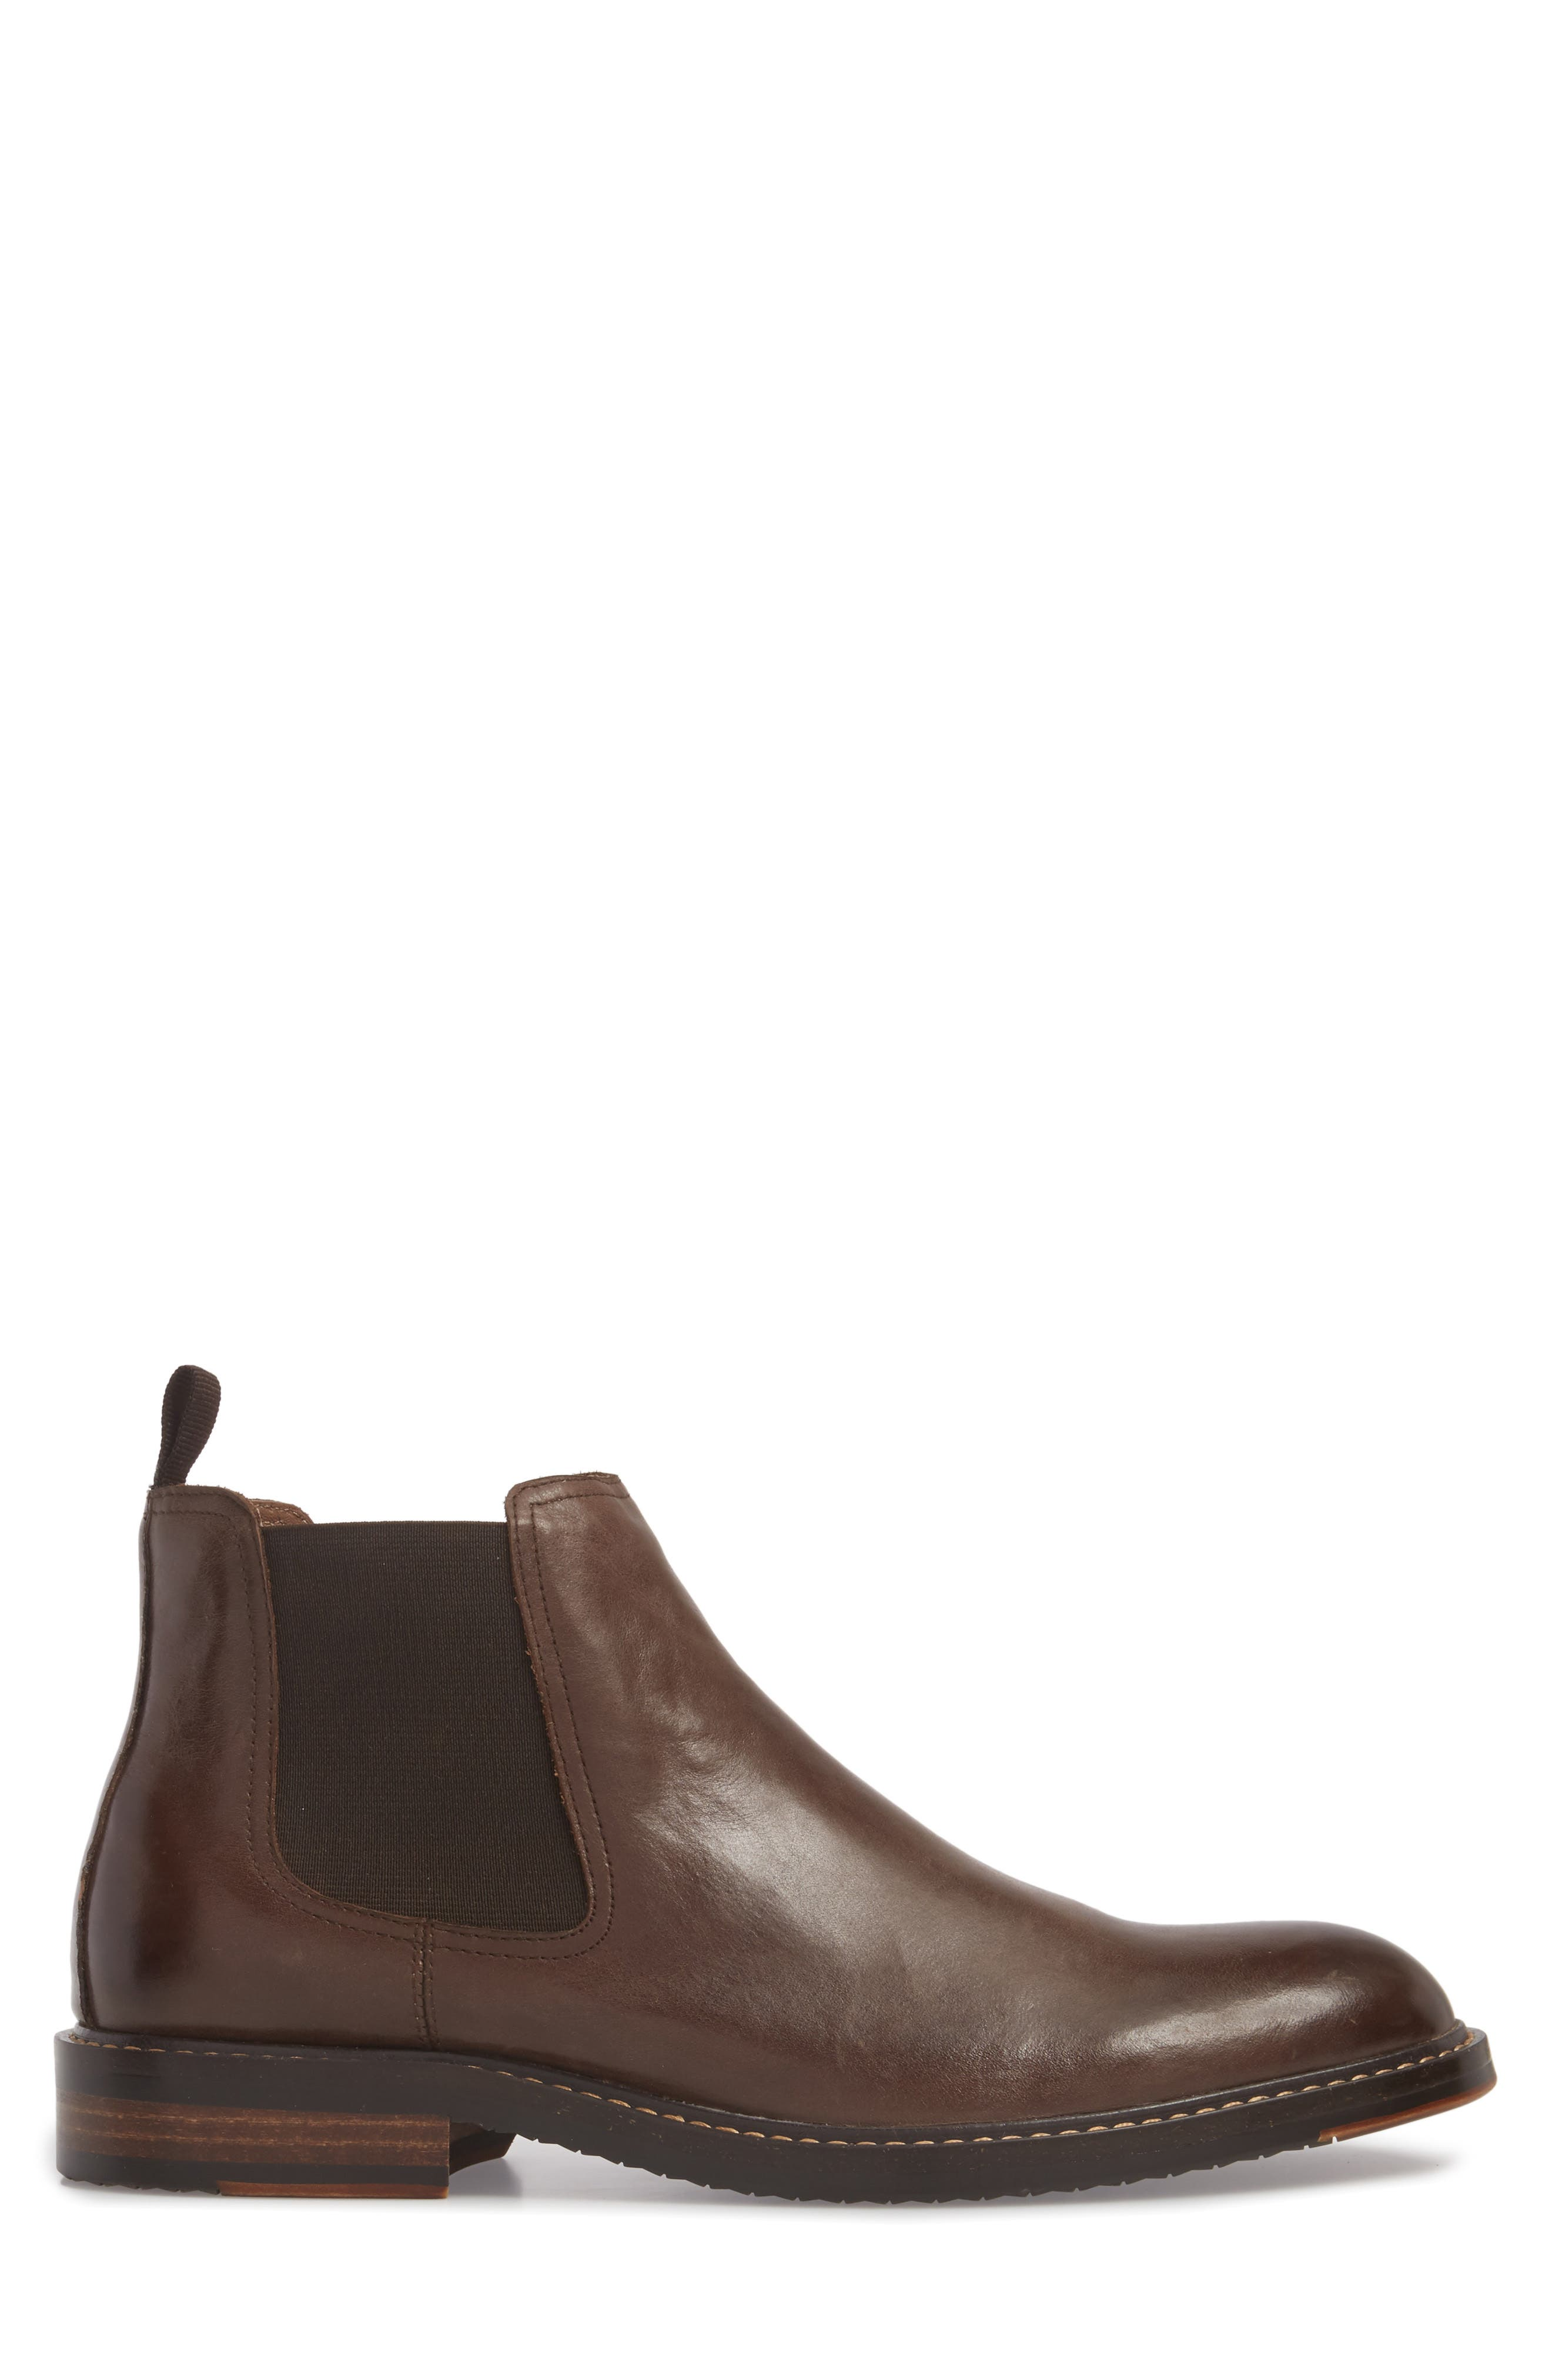 Brooks Chelsea Boot,                             Alternate thumbnail 3, color,                             BROWN LEATHER